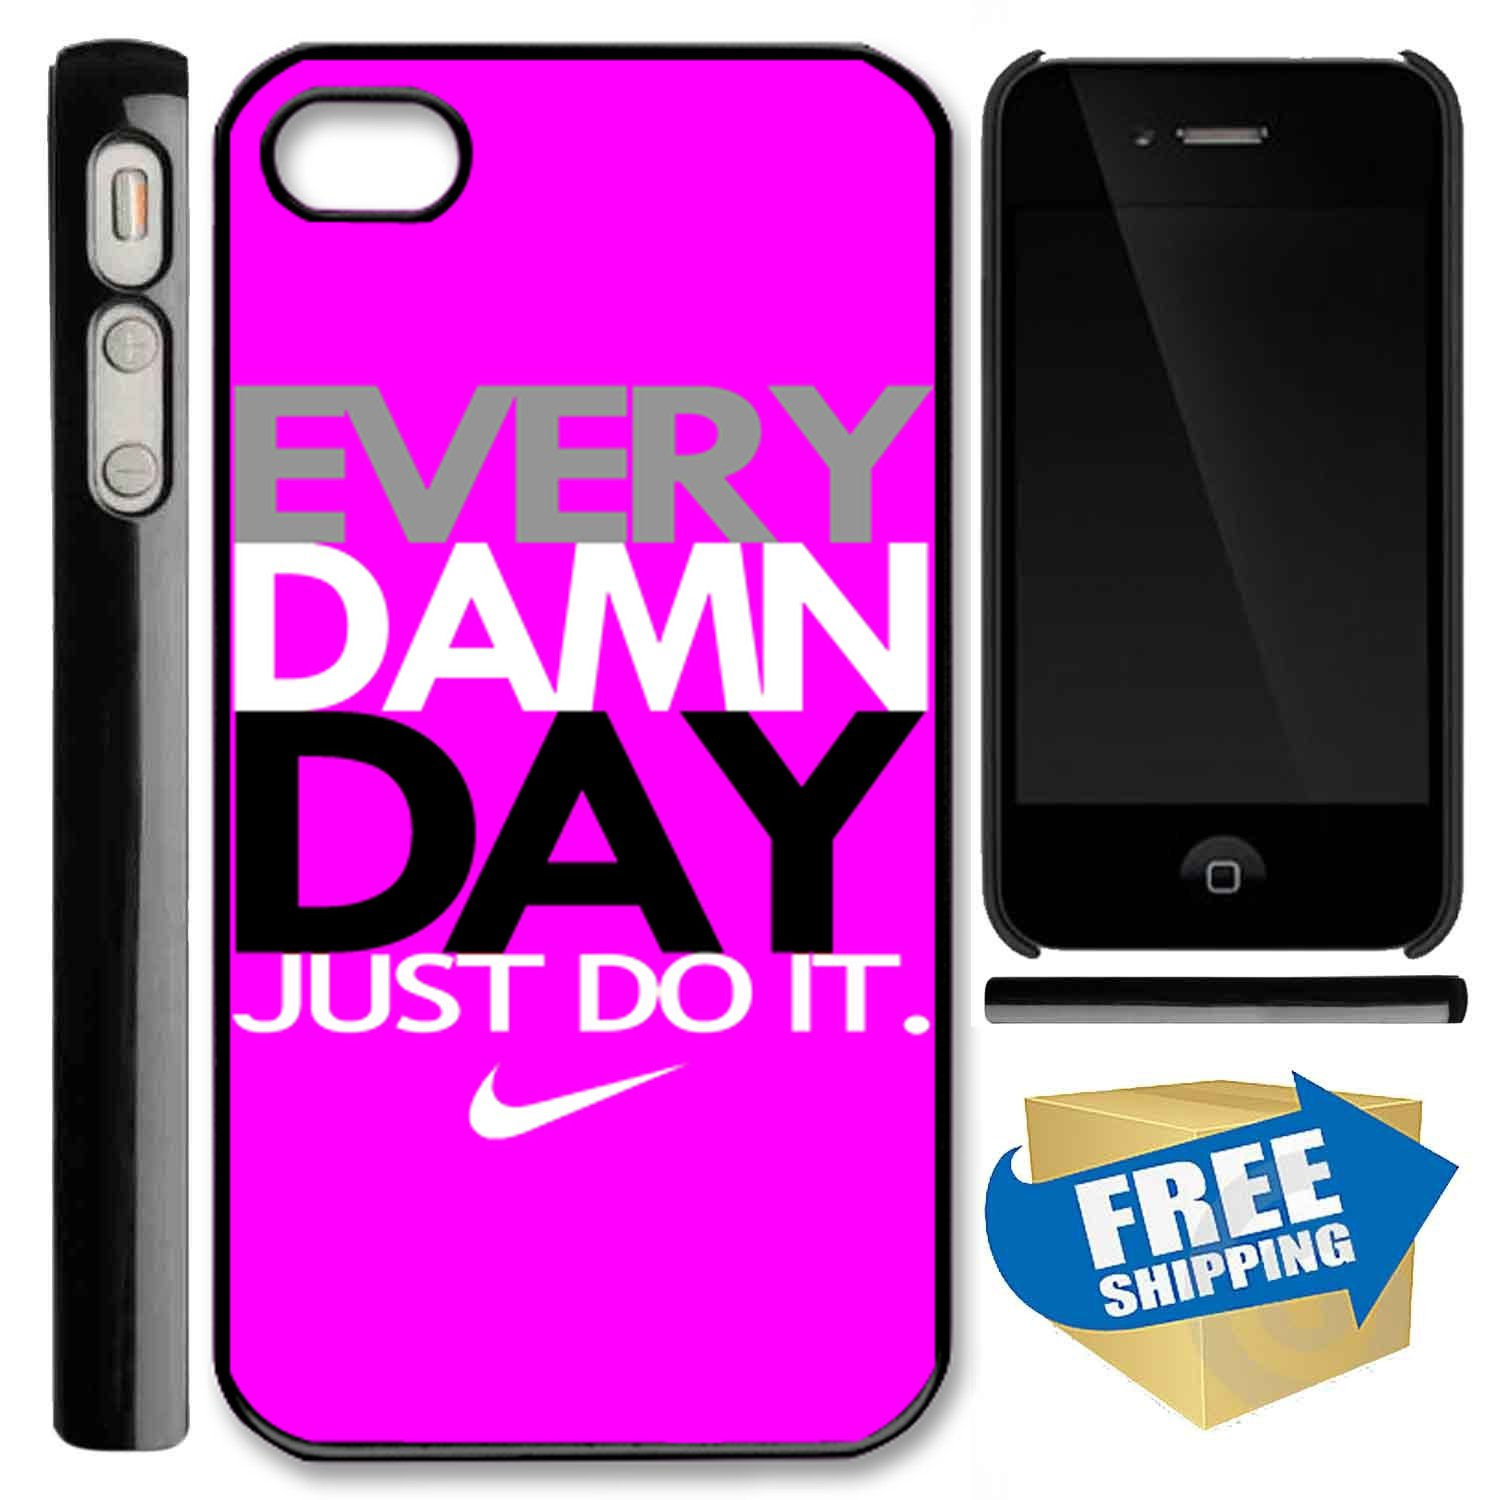 Every Damn Day Just Do It Nike Wallpaper